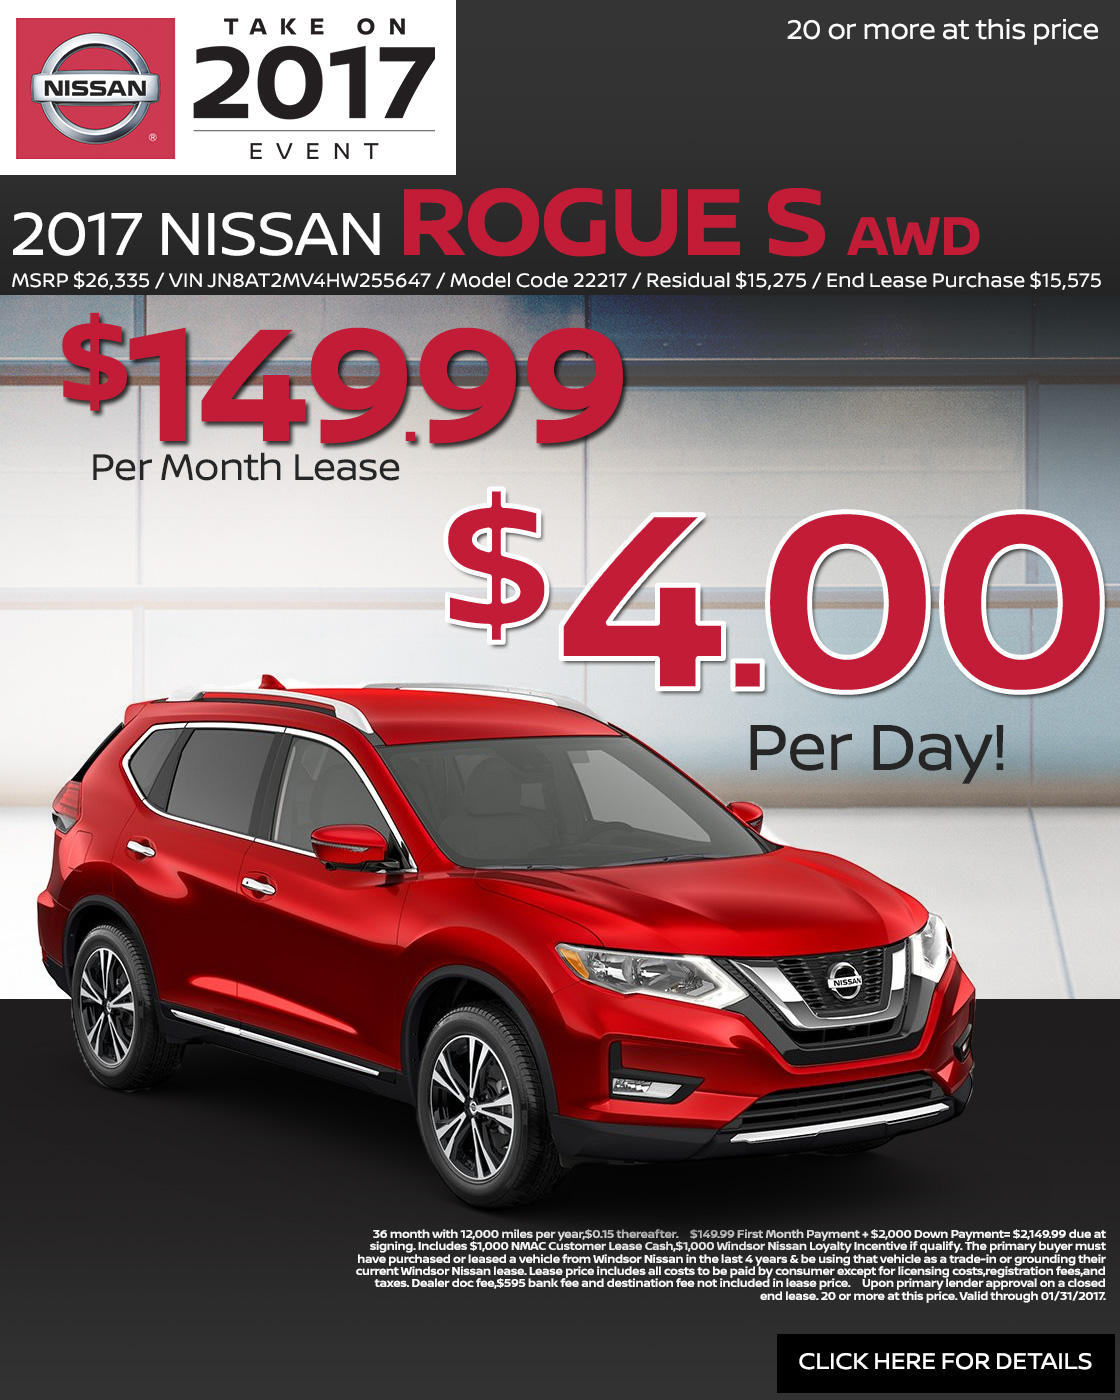 Find Great Nissan Lease Deals And Car Loan Offers At Our Car Dealership In  Denville.Nissan USA Official Site: See Contact Information, Inventory, ...